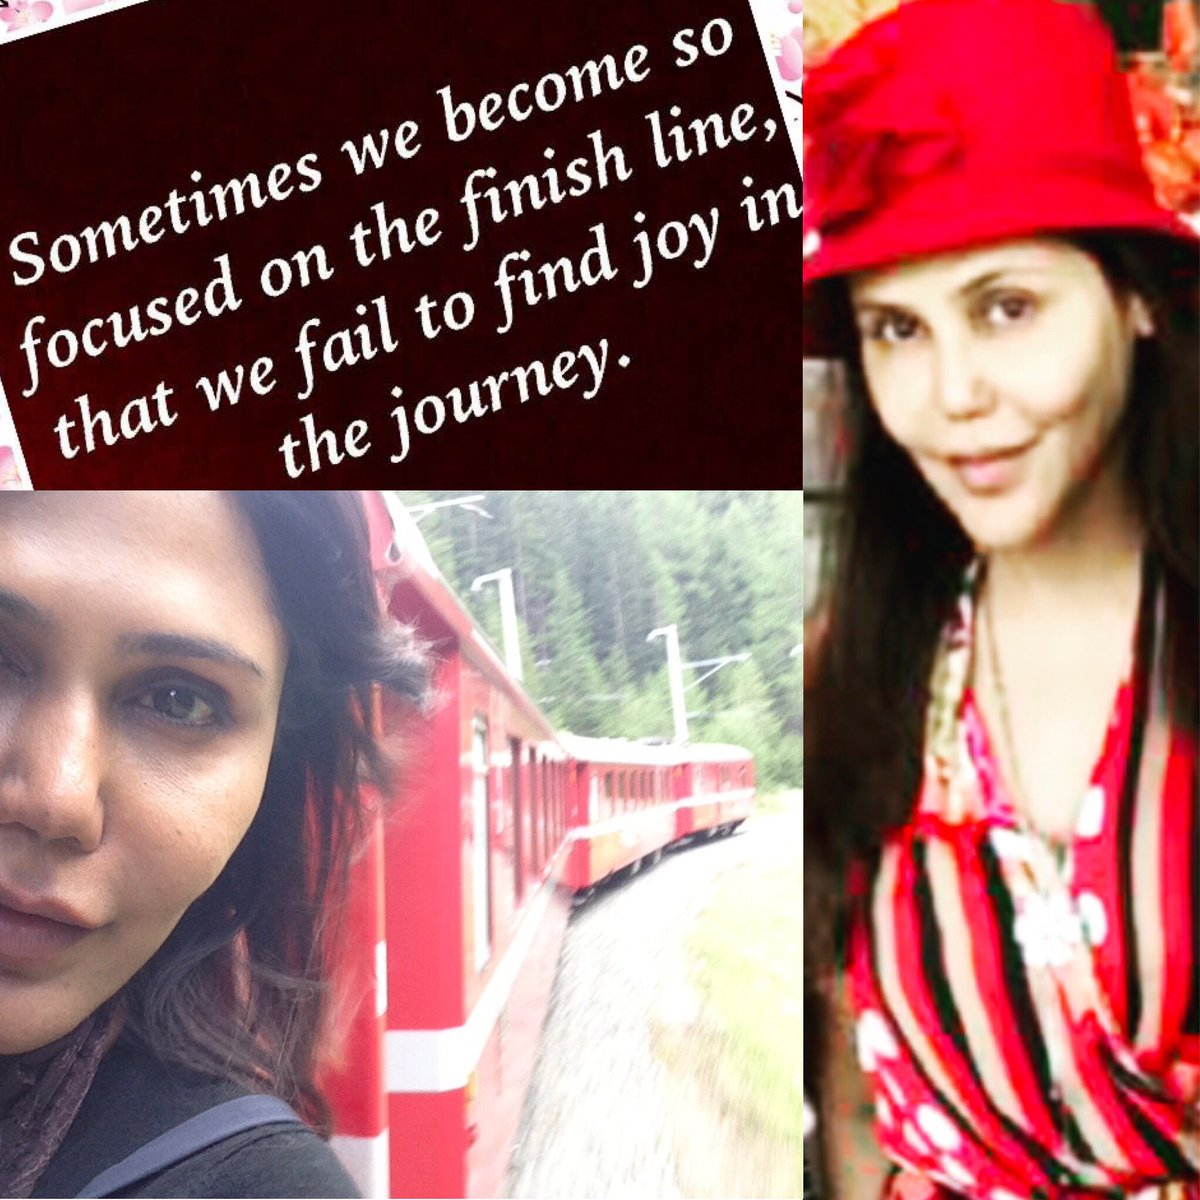 remember to #smelltheflowers #savor special #relationships in your rush to arrive!! There is no end there are only #beginnings #nishajamvwal<br>http://pic.twitter.com/jY5njQi4N8